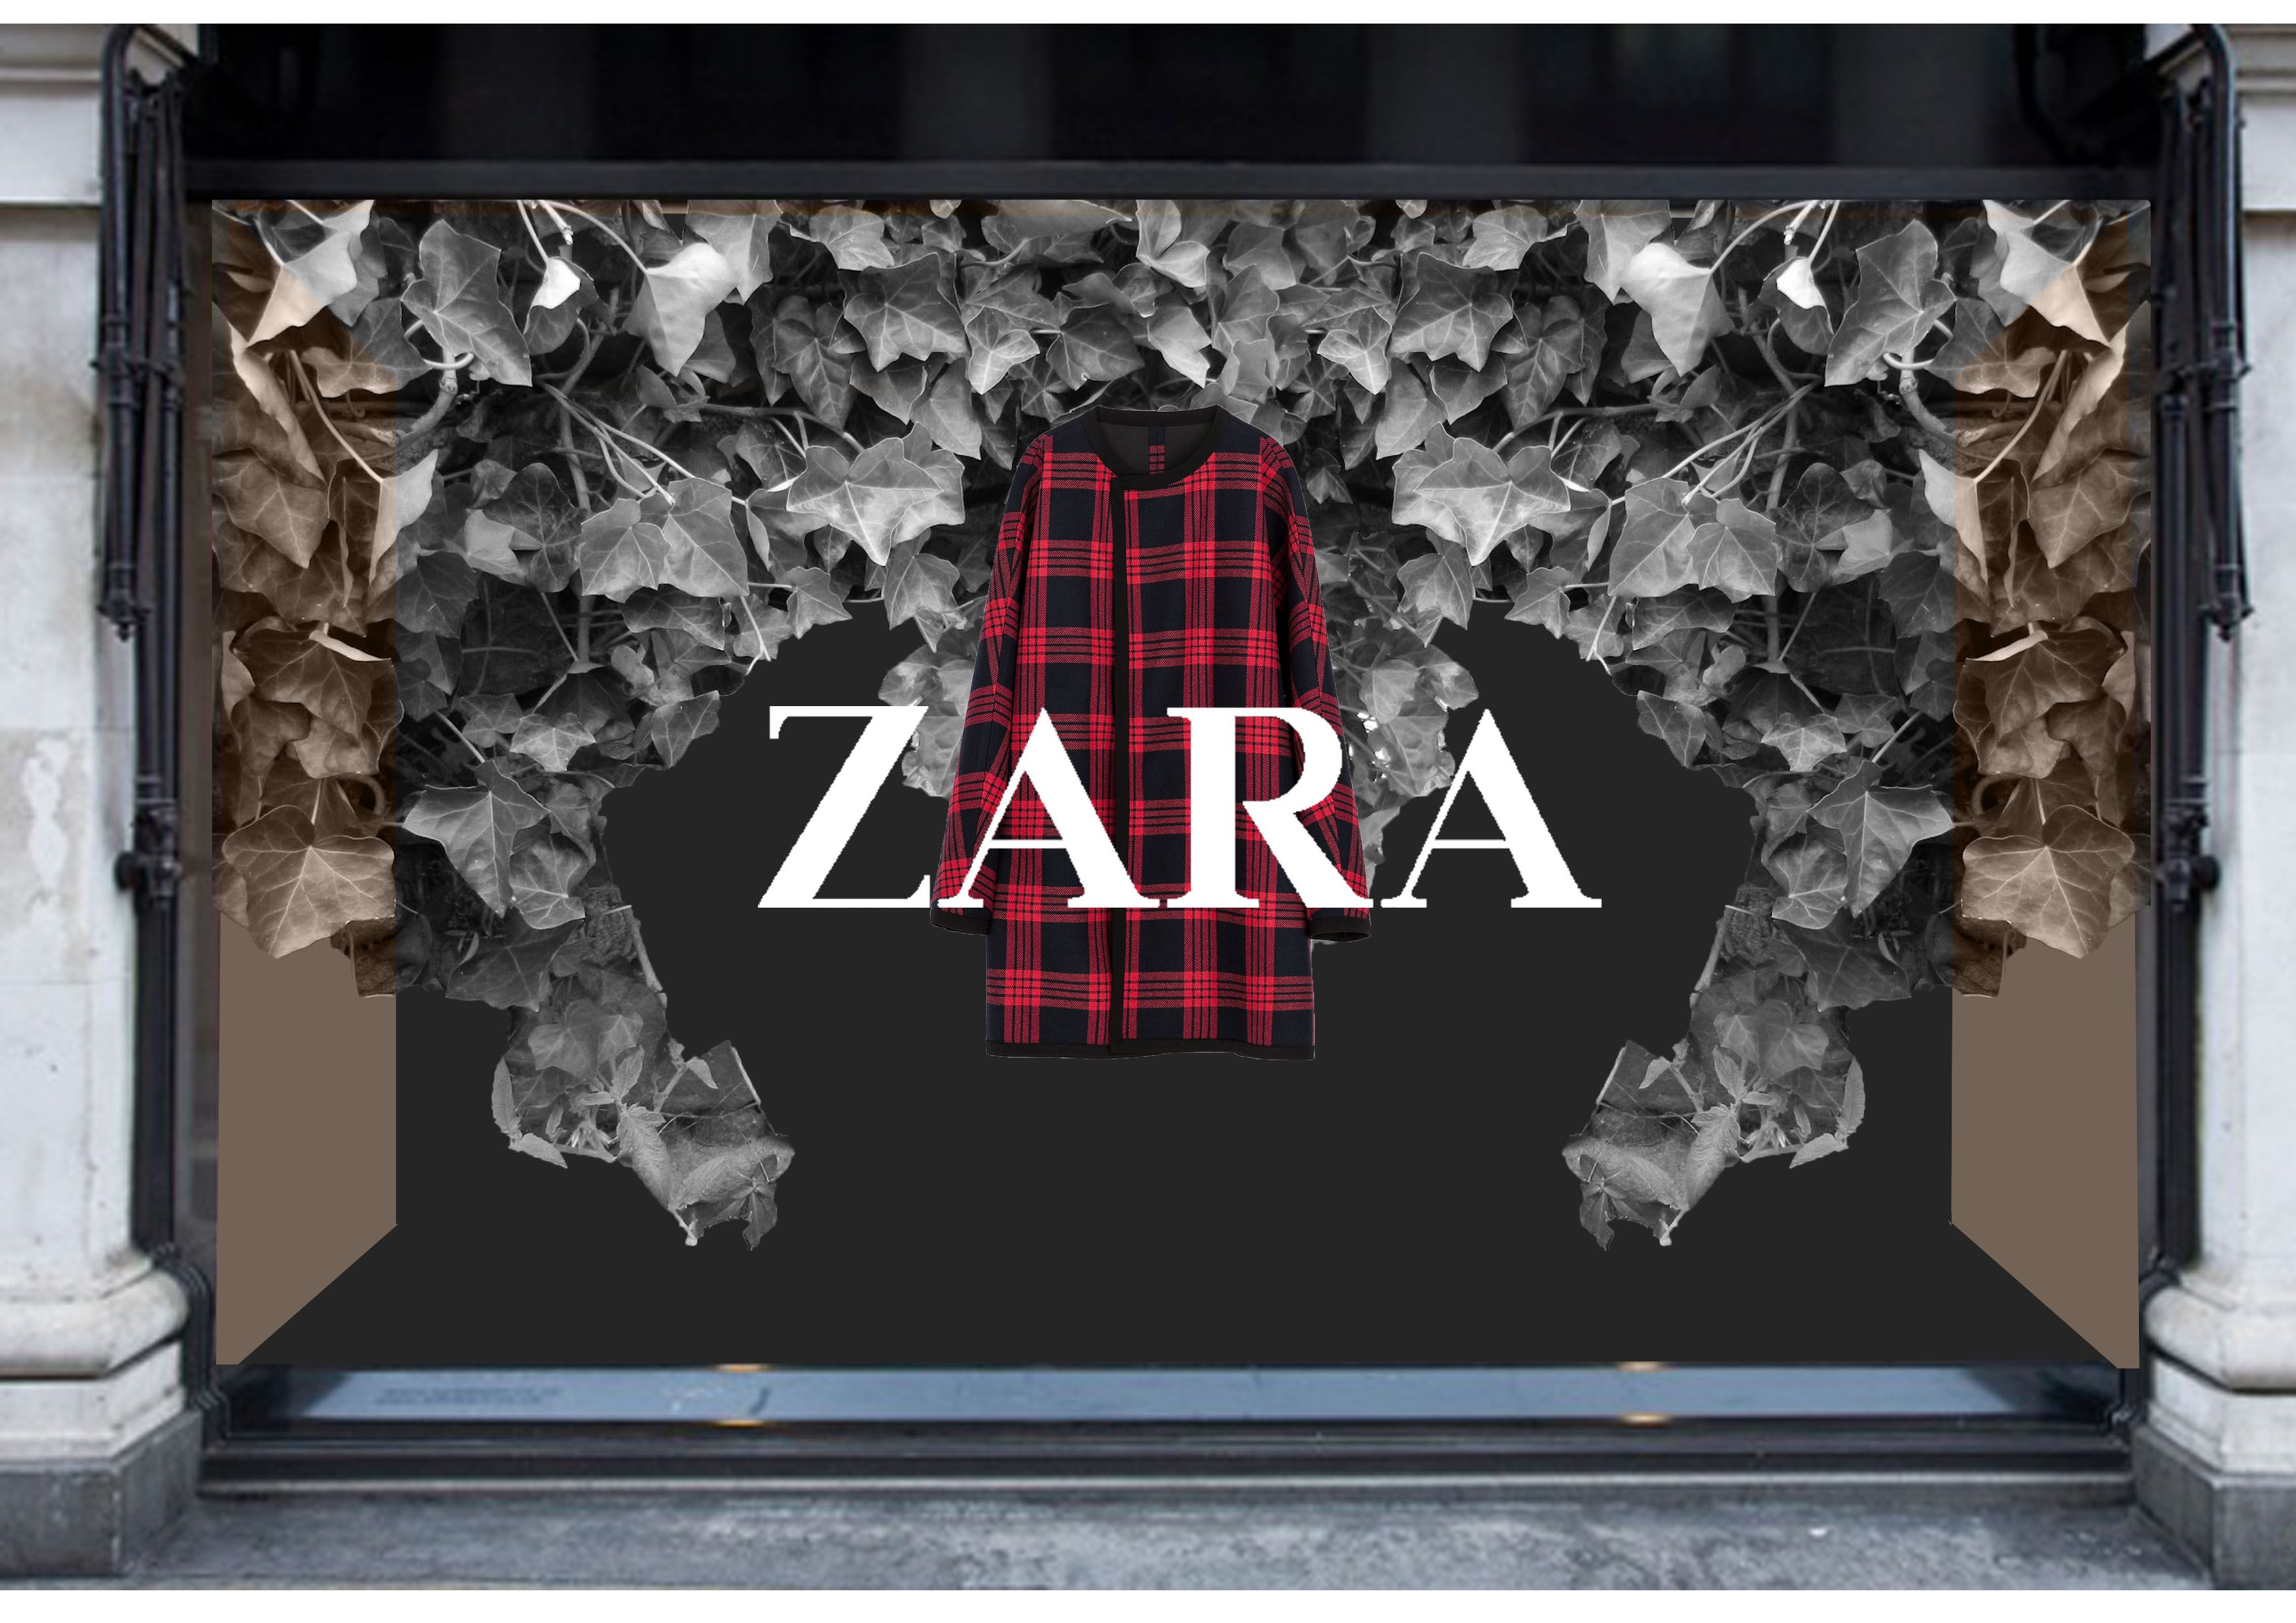 Zara poster design - Zara Window Display Cad